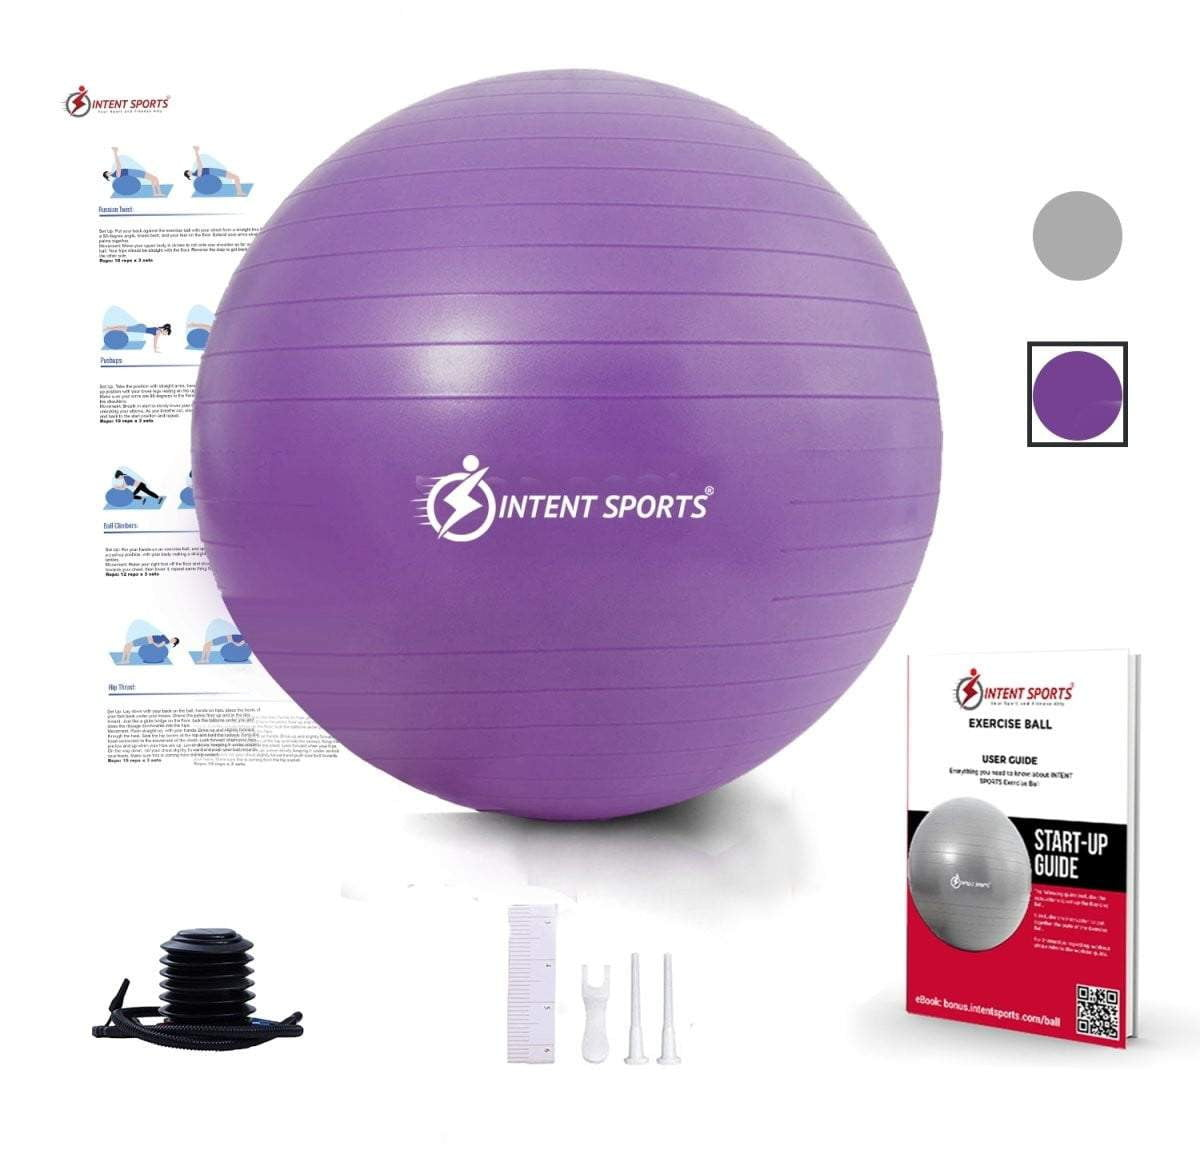 Exercise Ball Chair with Inflation Pump - Intent Sports